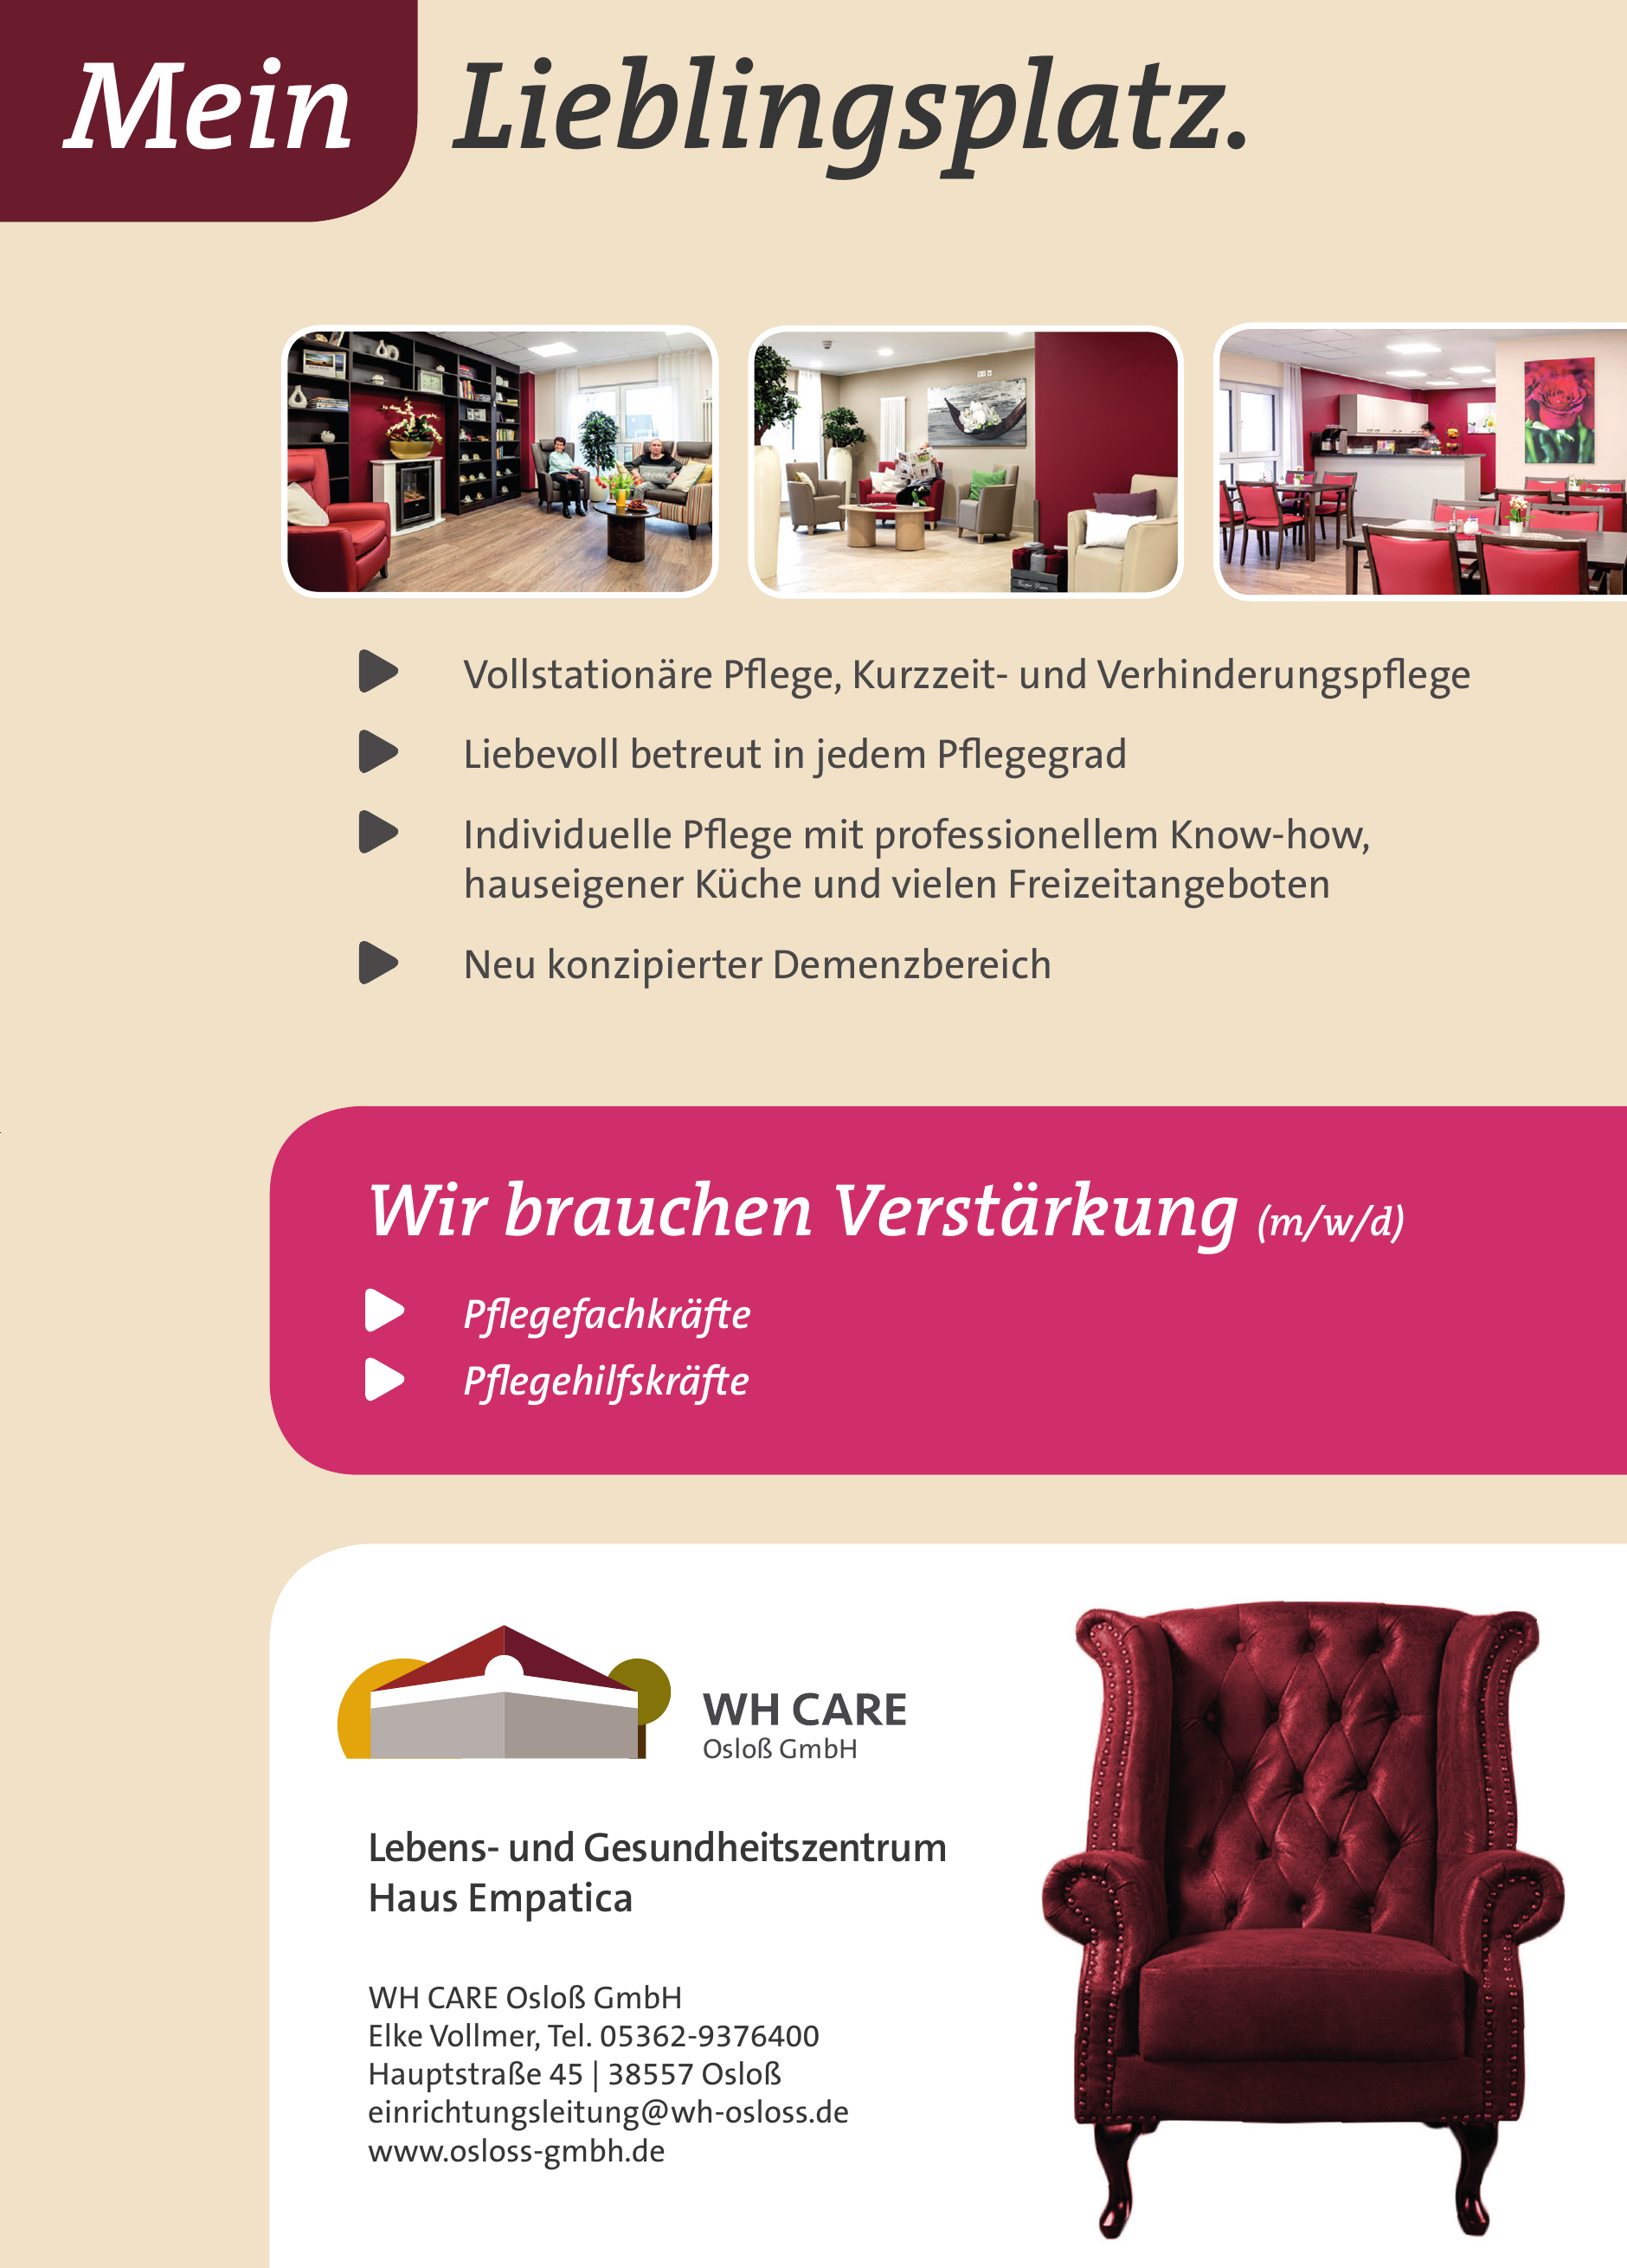 WH Care Osloß GmbH